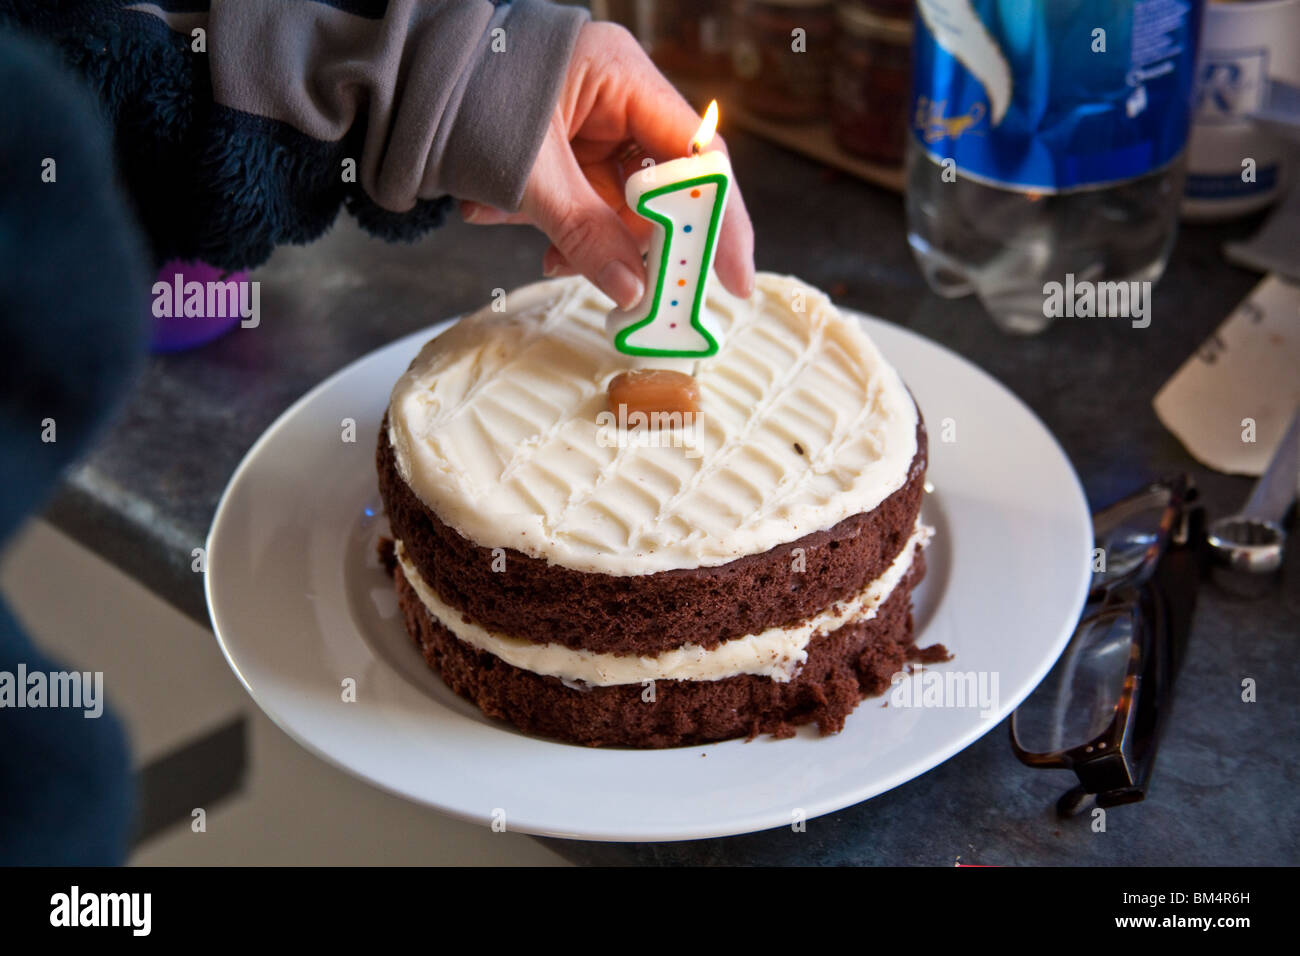 Chocolate, birthday cake with a number 1 candle. - Stock Image